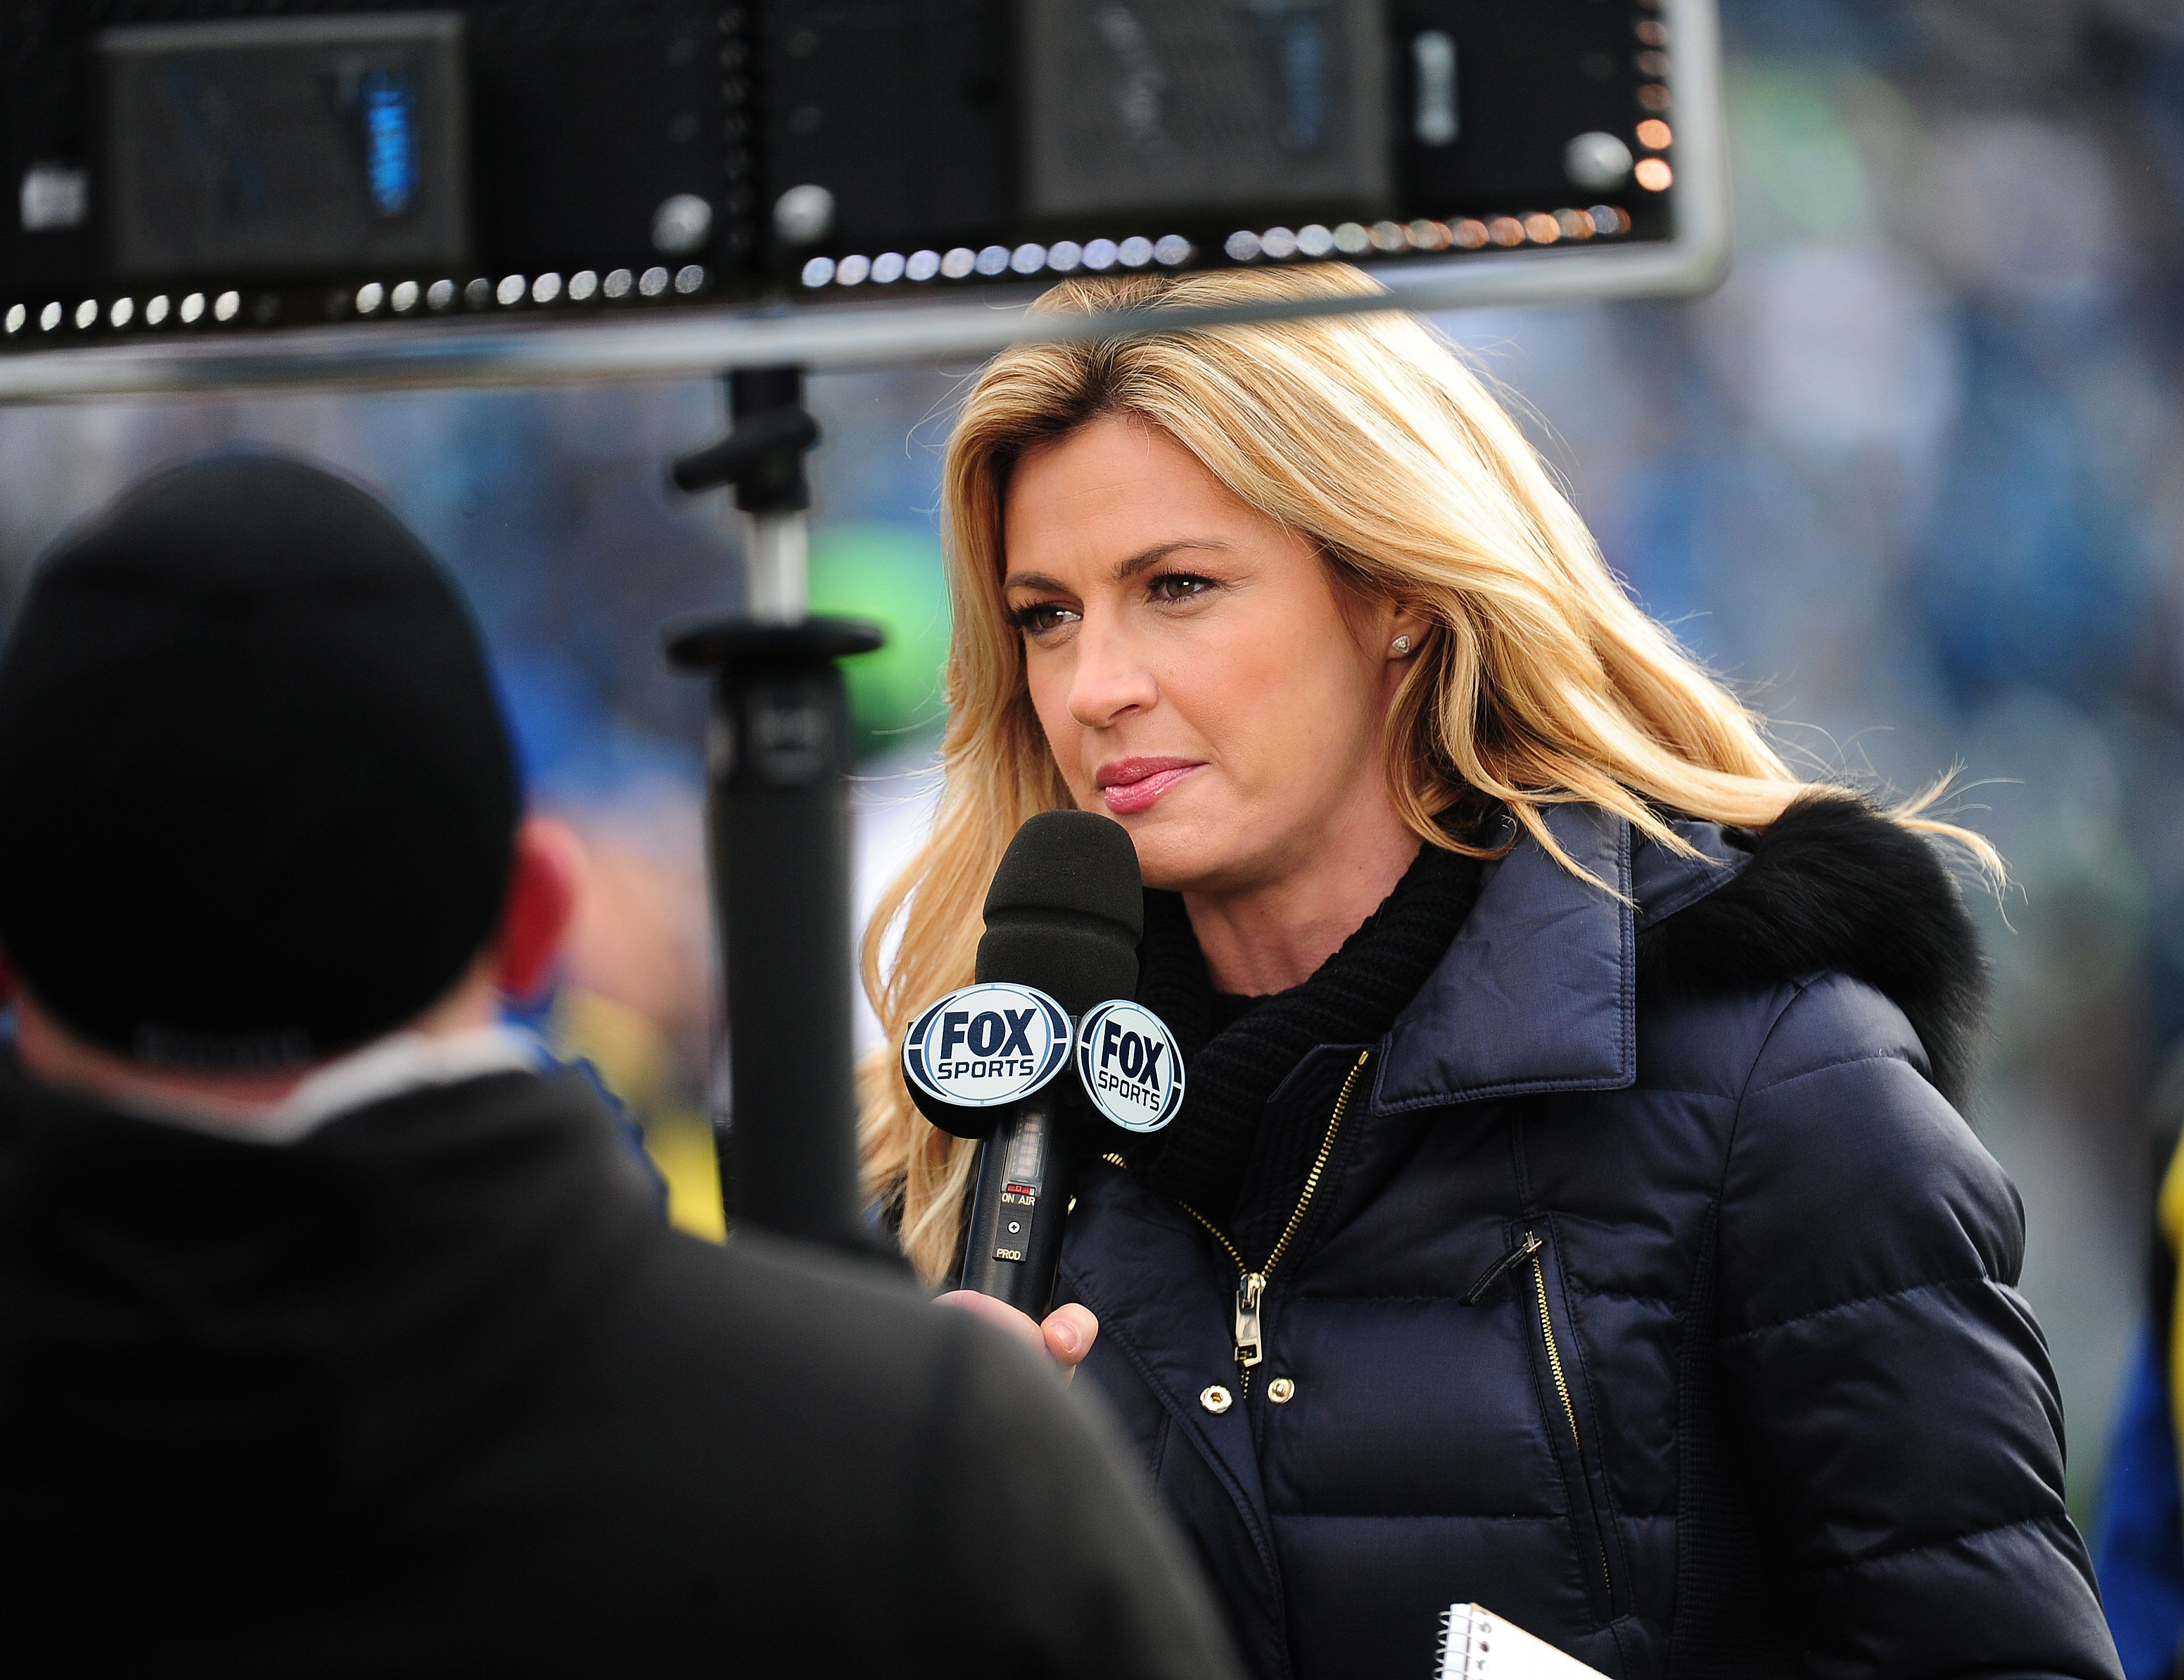 CHARLOTTE, NC - JANUARY 17: Fox Sports sideline reporter Erin Andrews gives an update during the NFC Divisional Playoff Game between the Carolina Panthers and the Seattle Seahawks at Bank Of America Stadium on January 17, 2016 in Charlotte, North Carolina. (Photo by Scott Cunningham/Getty Images)